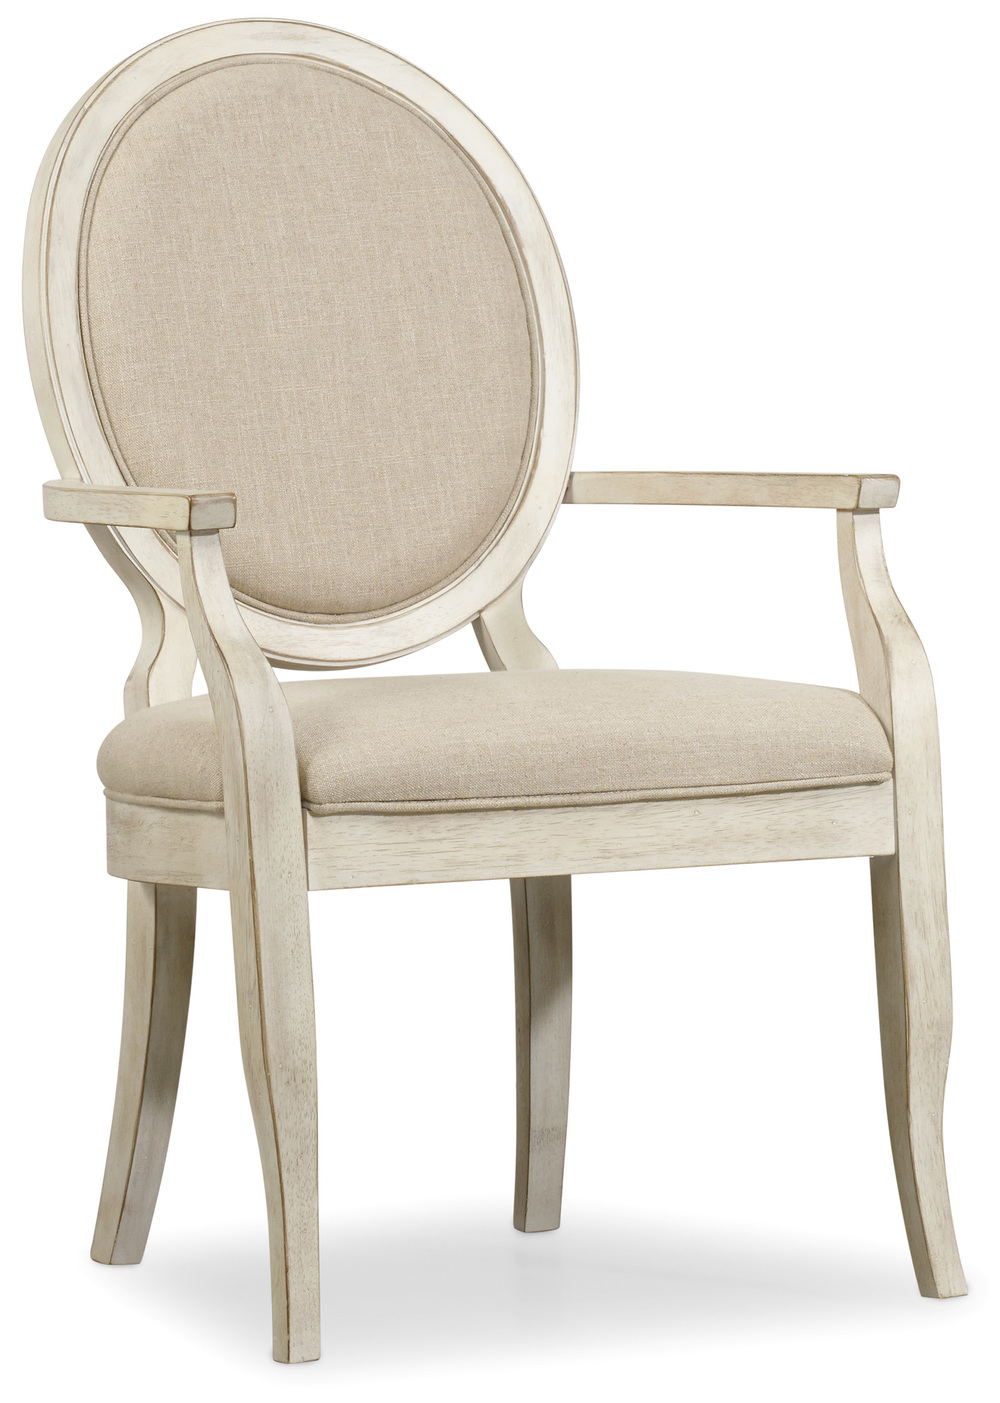 HOOKER FURNITURE CO - Sunset Point Upholstered Arm Chair